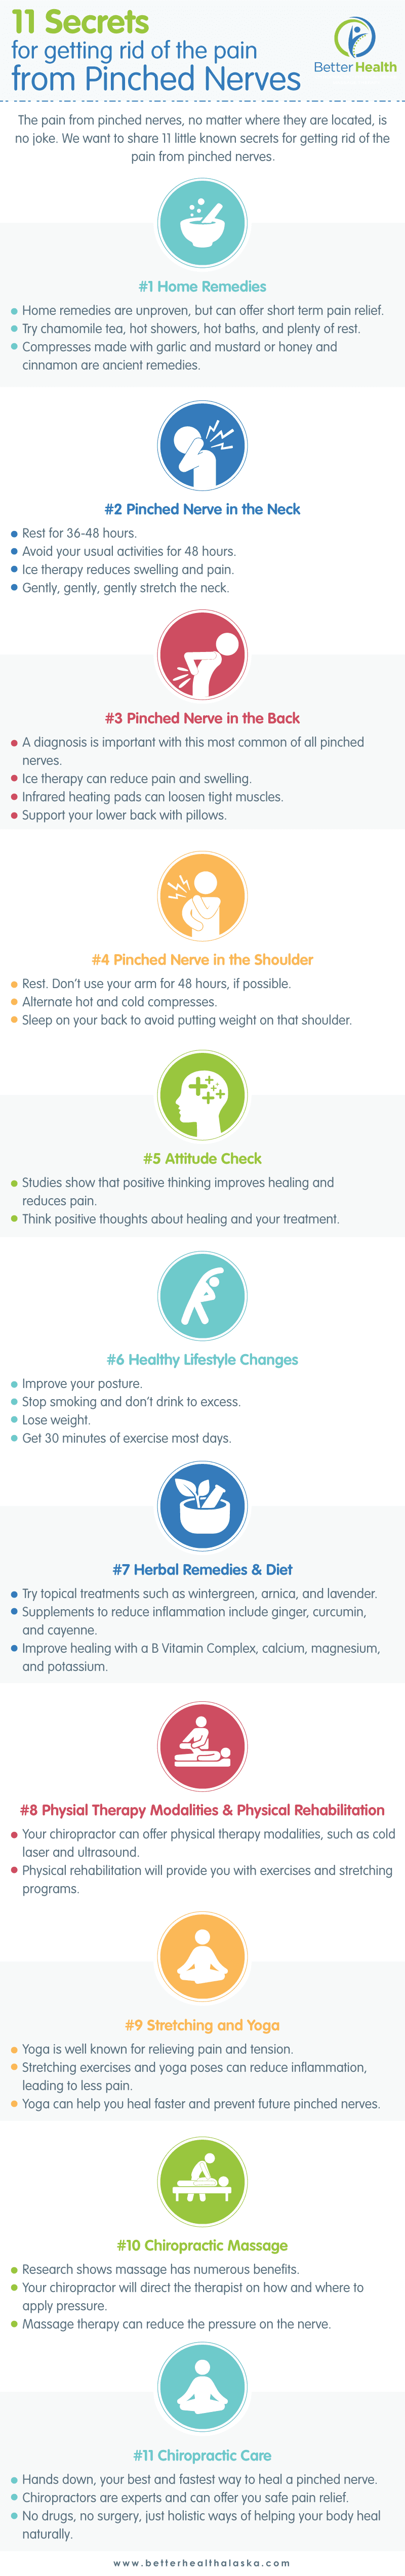 11 Secrets for Getting Rid of the Pain from Pinched Nerves Infographic